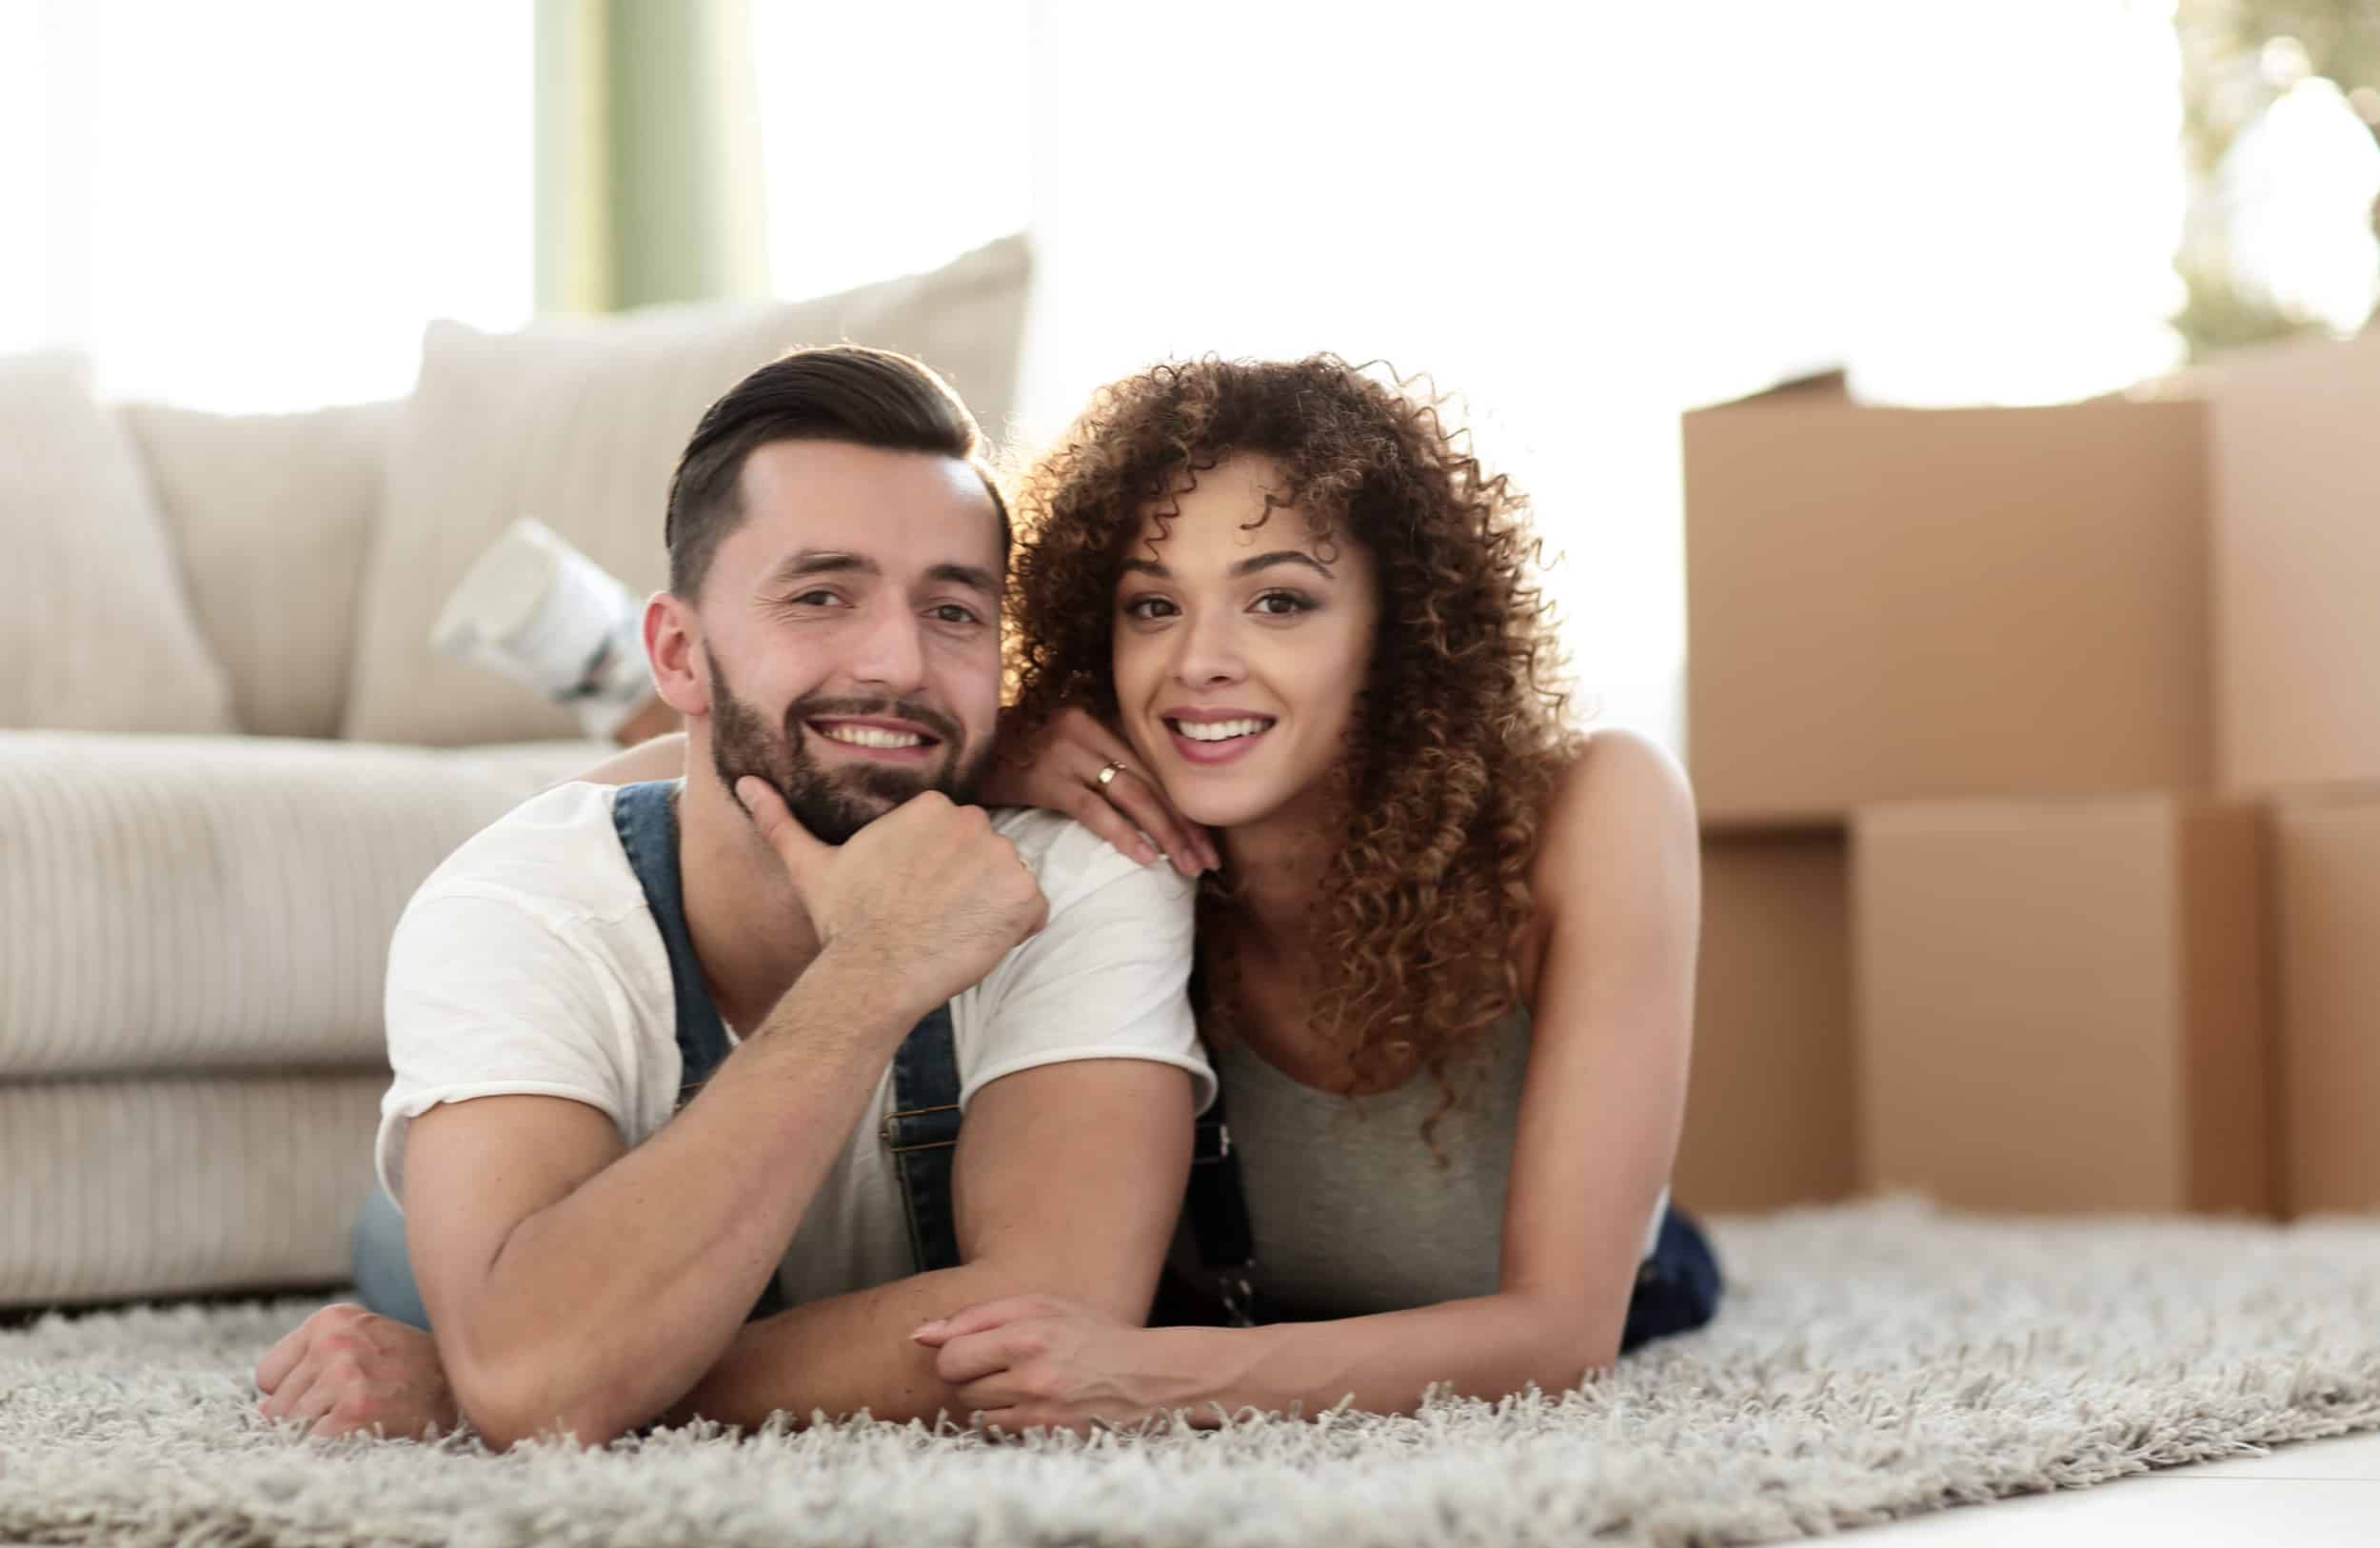 A young couple smiling in a new home surrounded by moving boxes